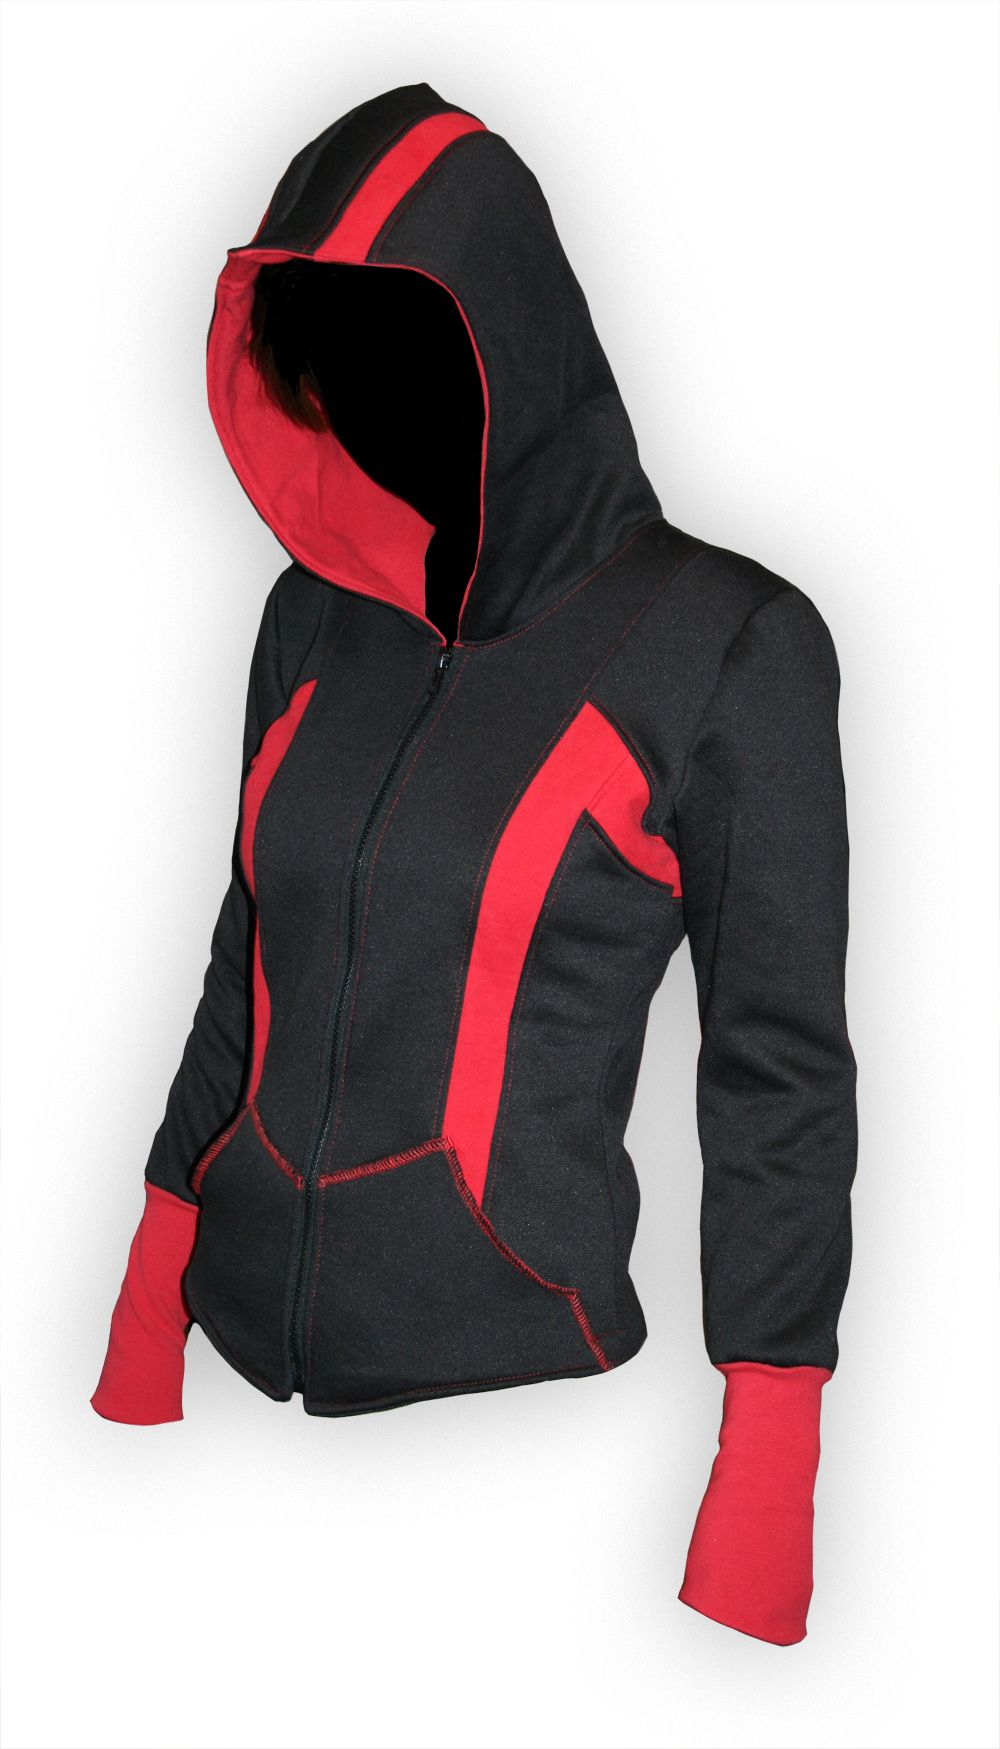 Assassin s Creed inspired women s hoodie - Volante Design   Gamer ... bfdfce8cc43